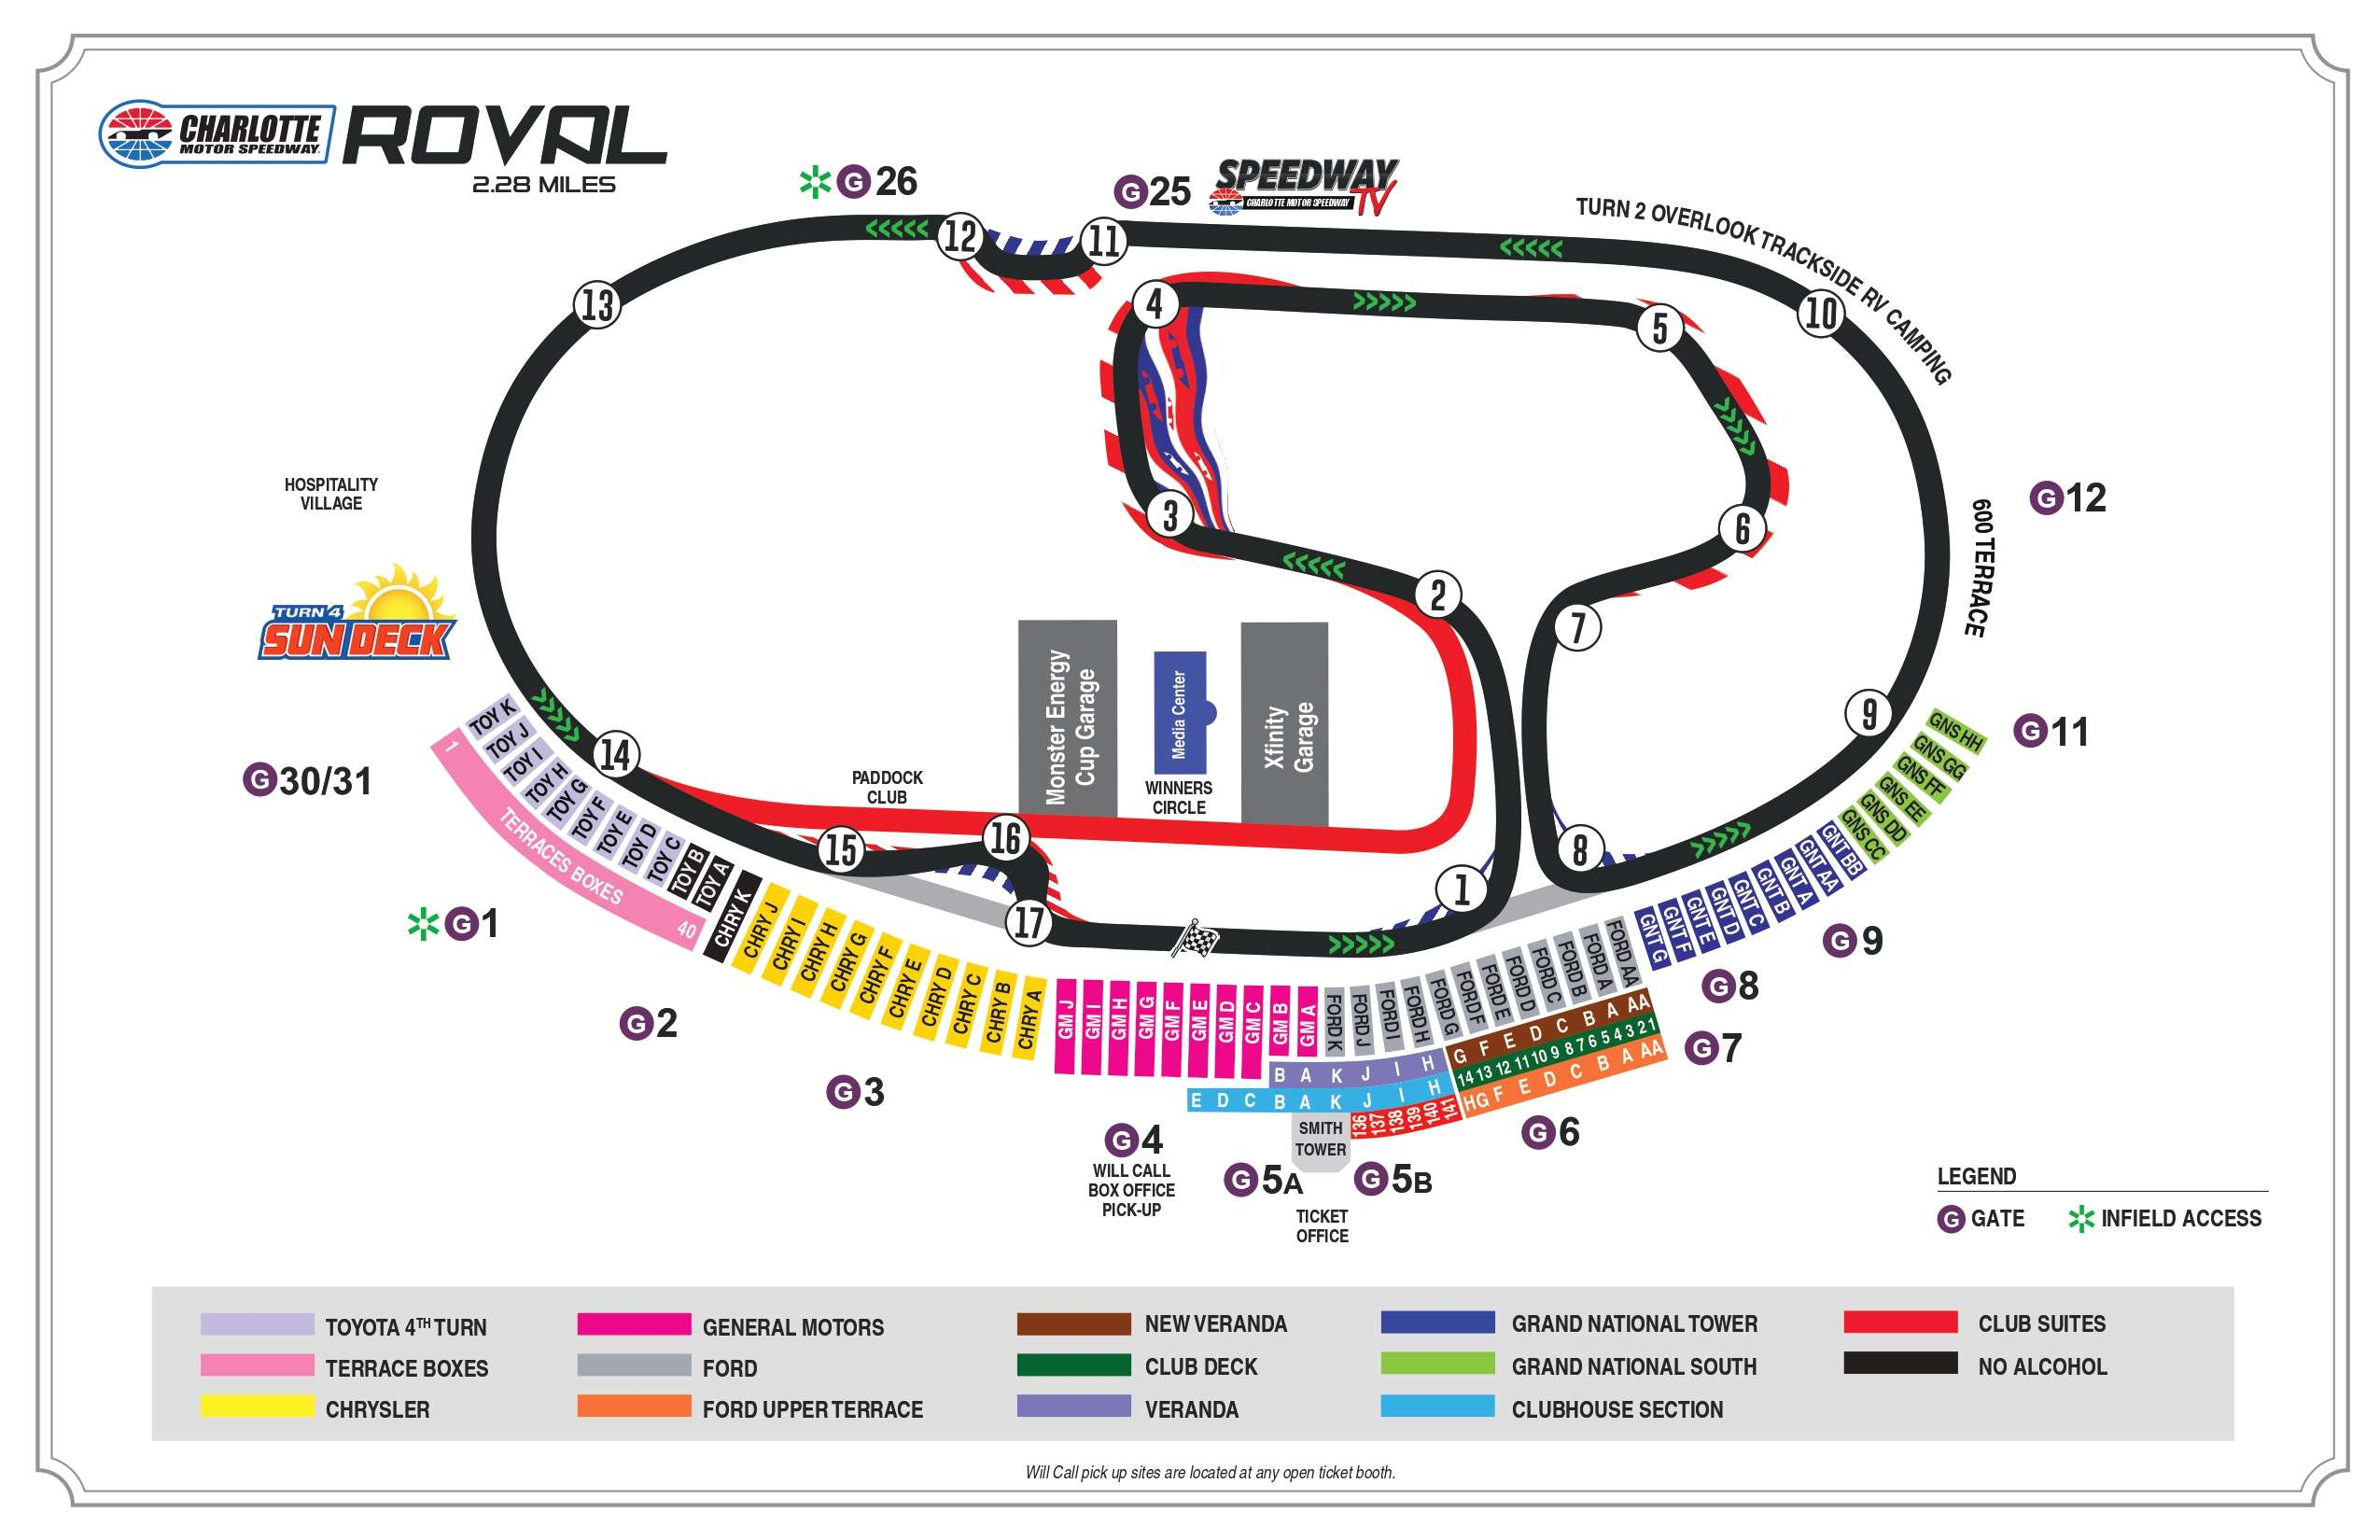 Charlotte Motor Speedway Roval Seating Chart displays, seats, stands, race track along with Veranda, decks, all turns, entry, exit, gates.